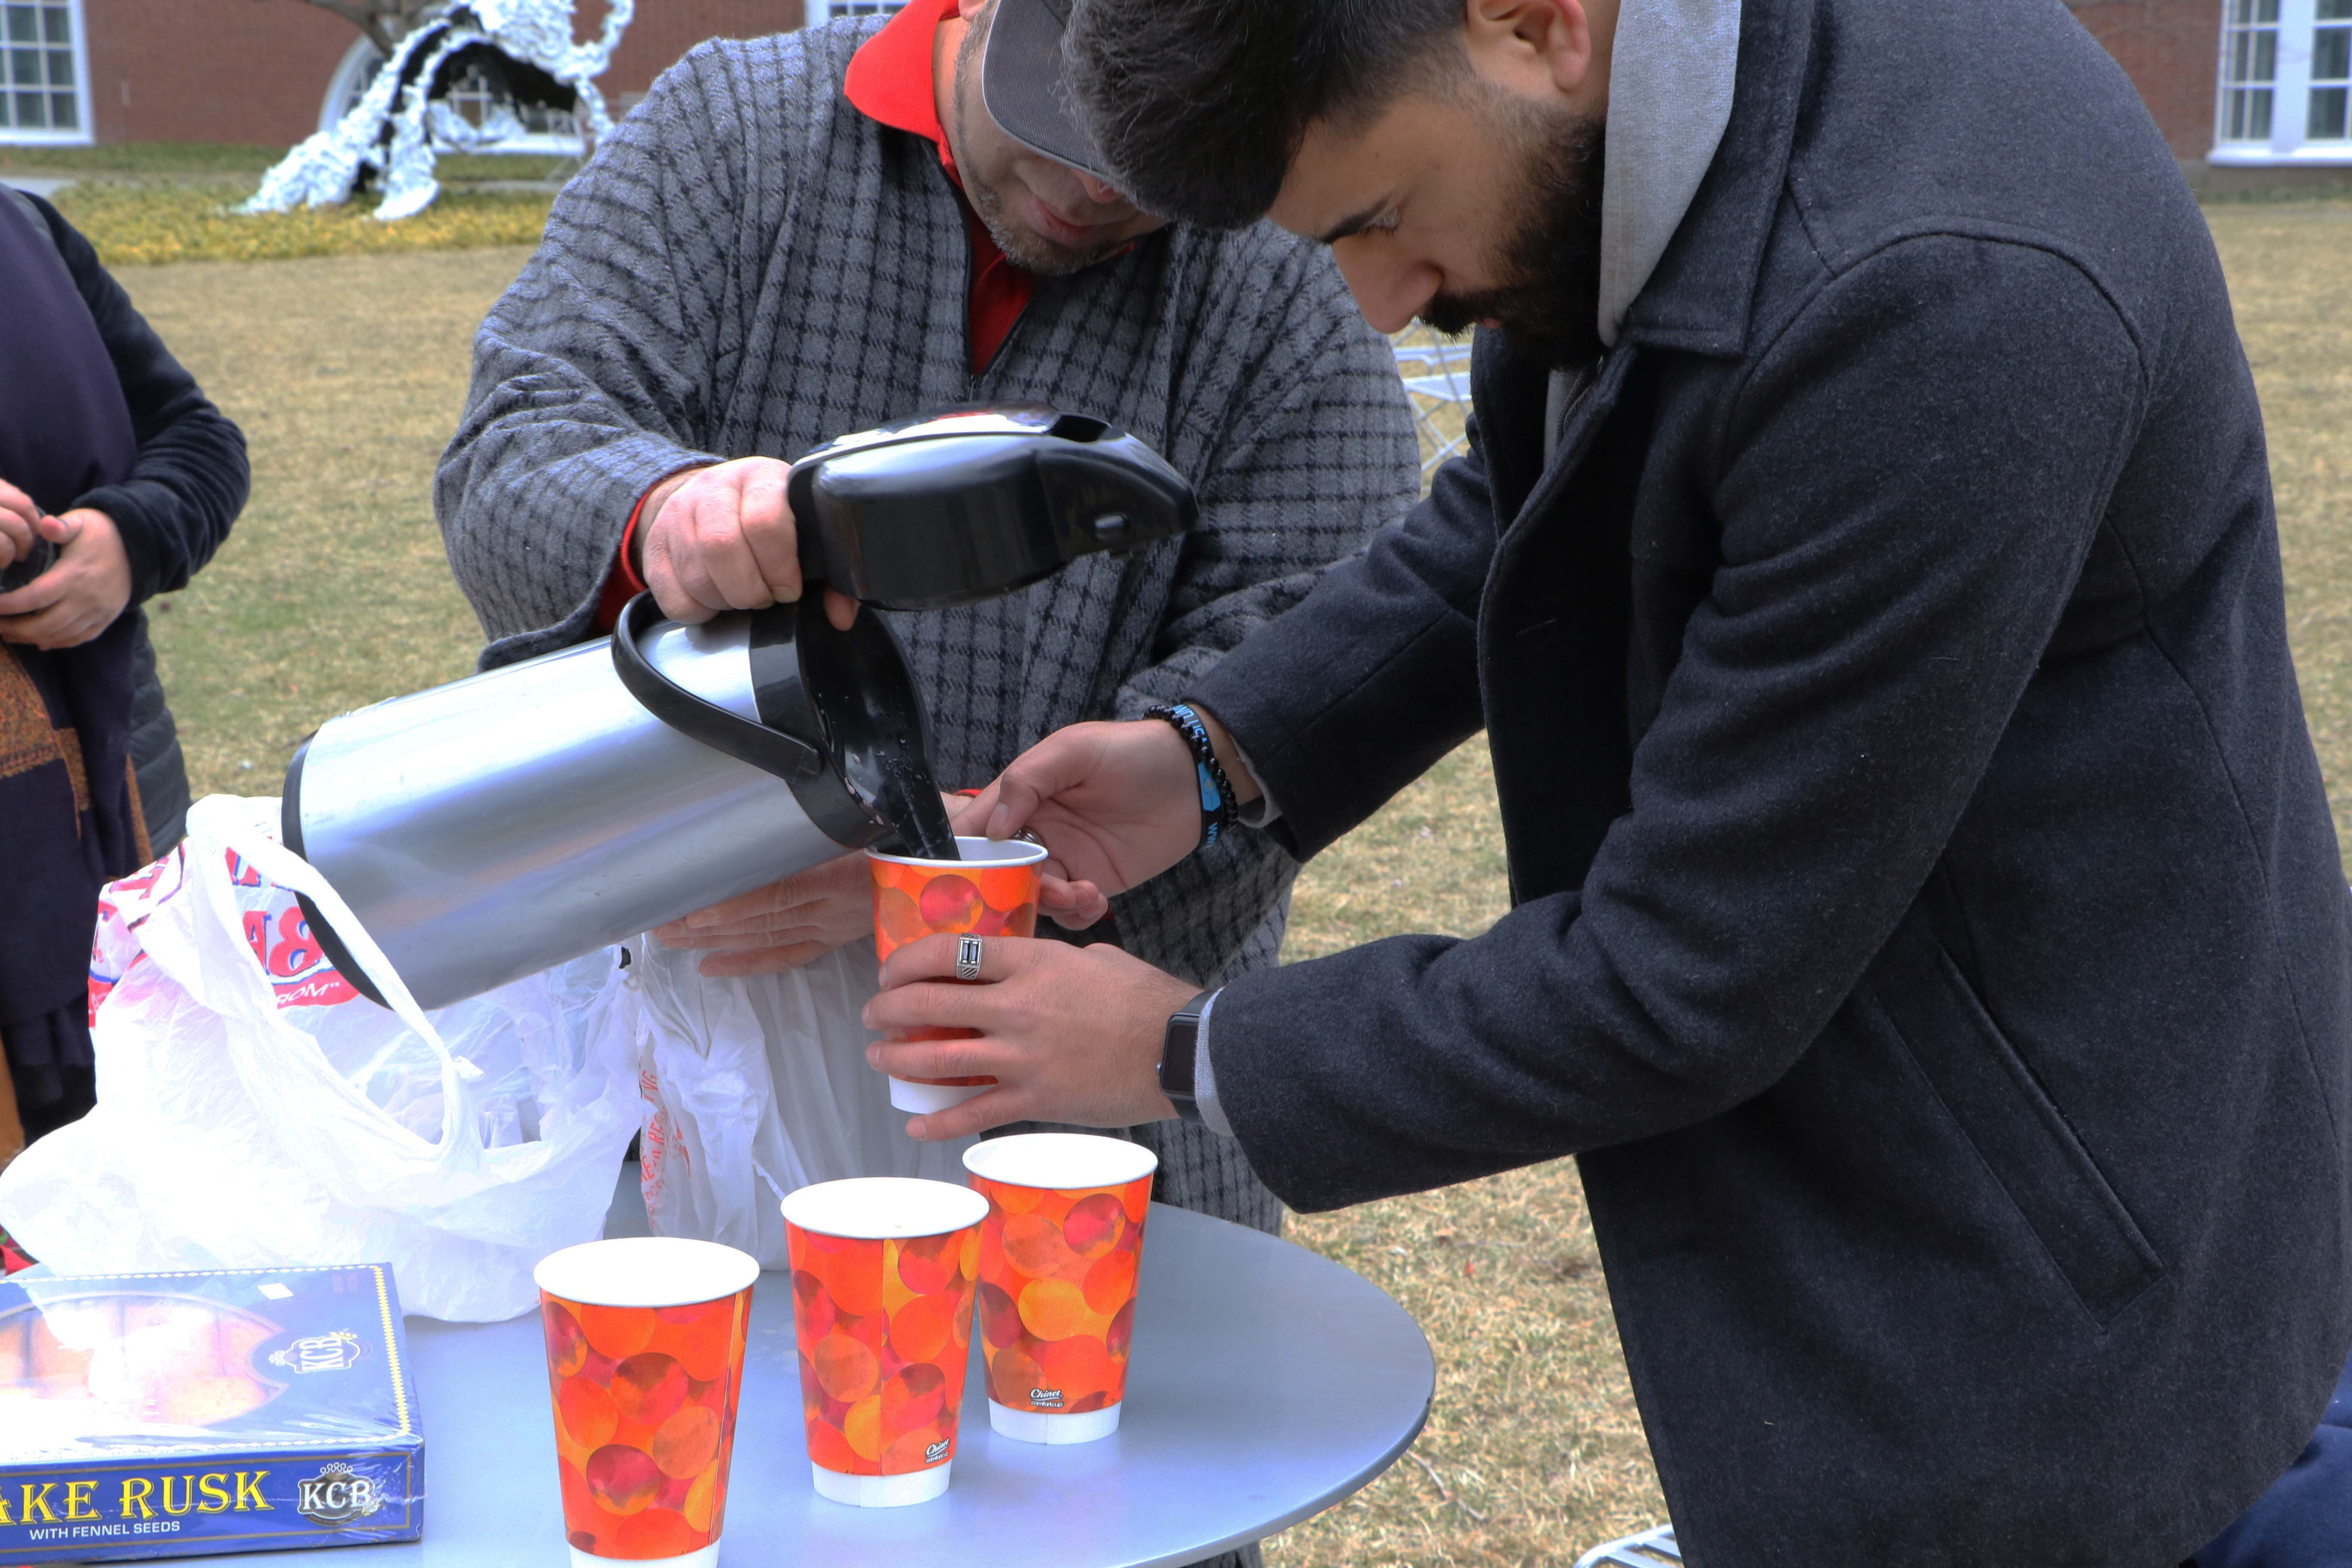 A man pours in tea into paper cups.